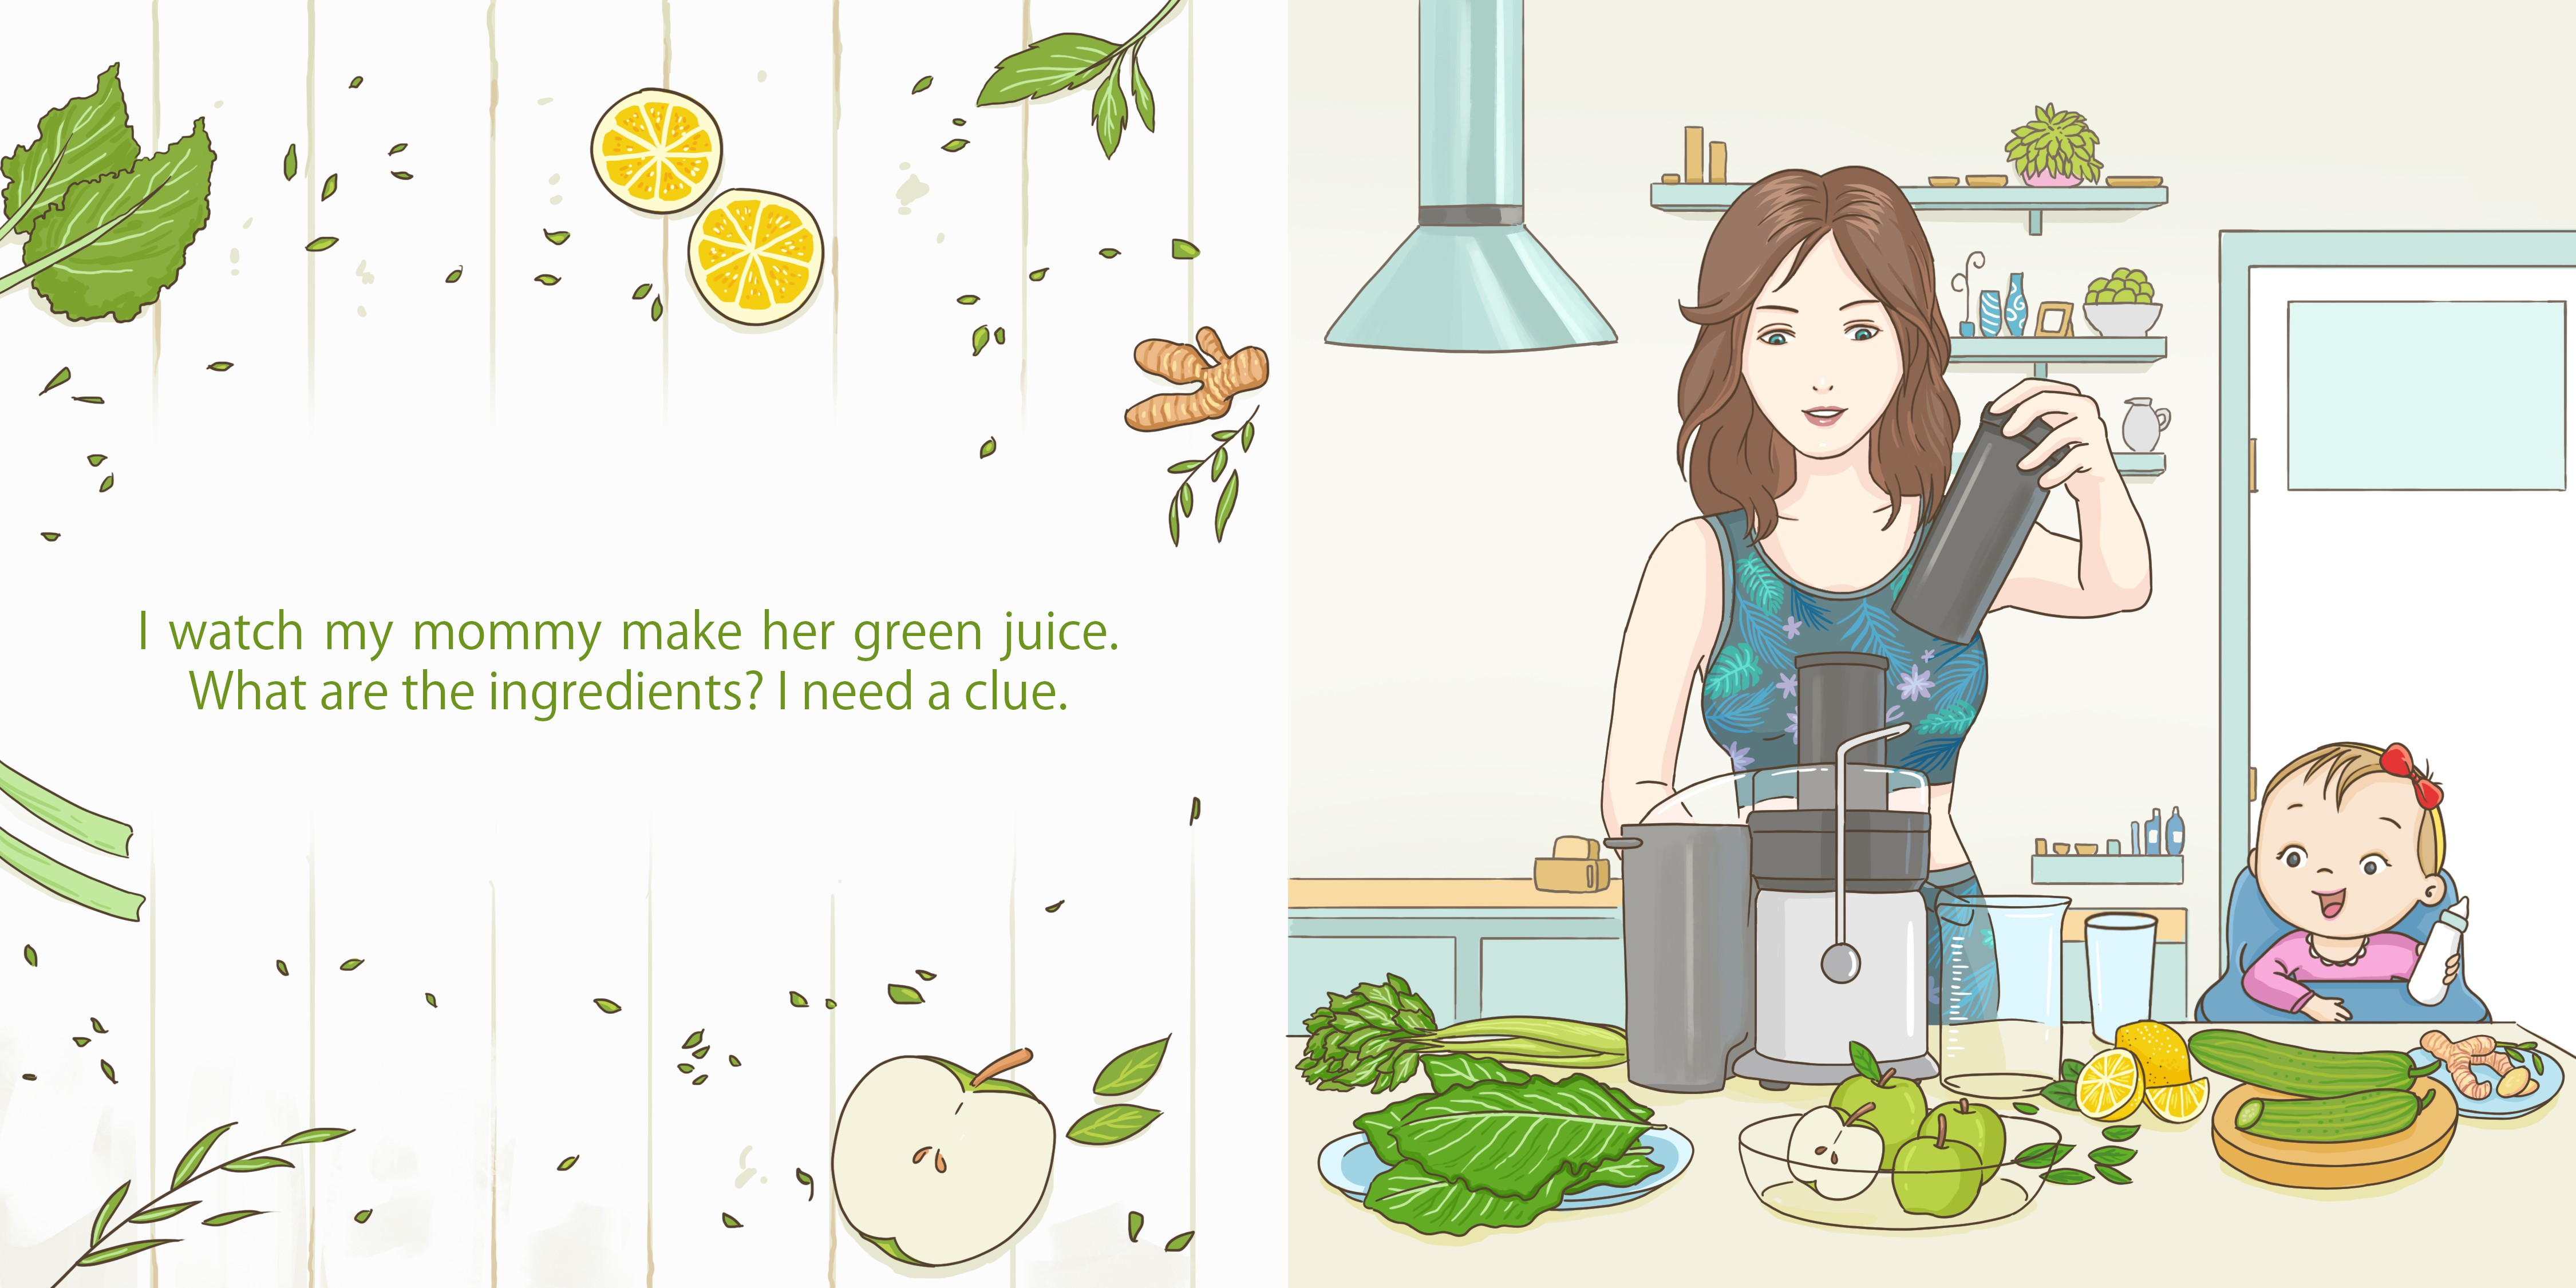 What's in mommy's green juice?